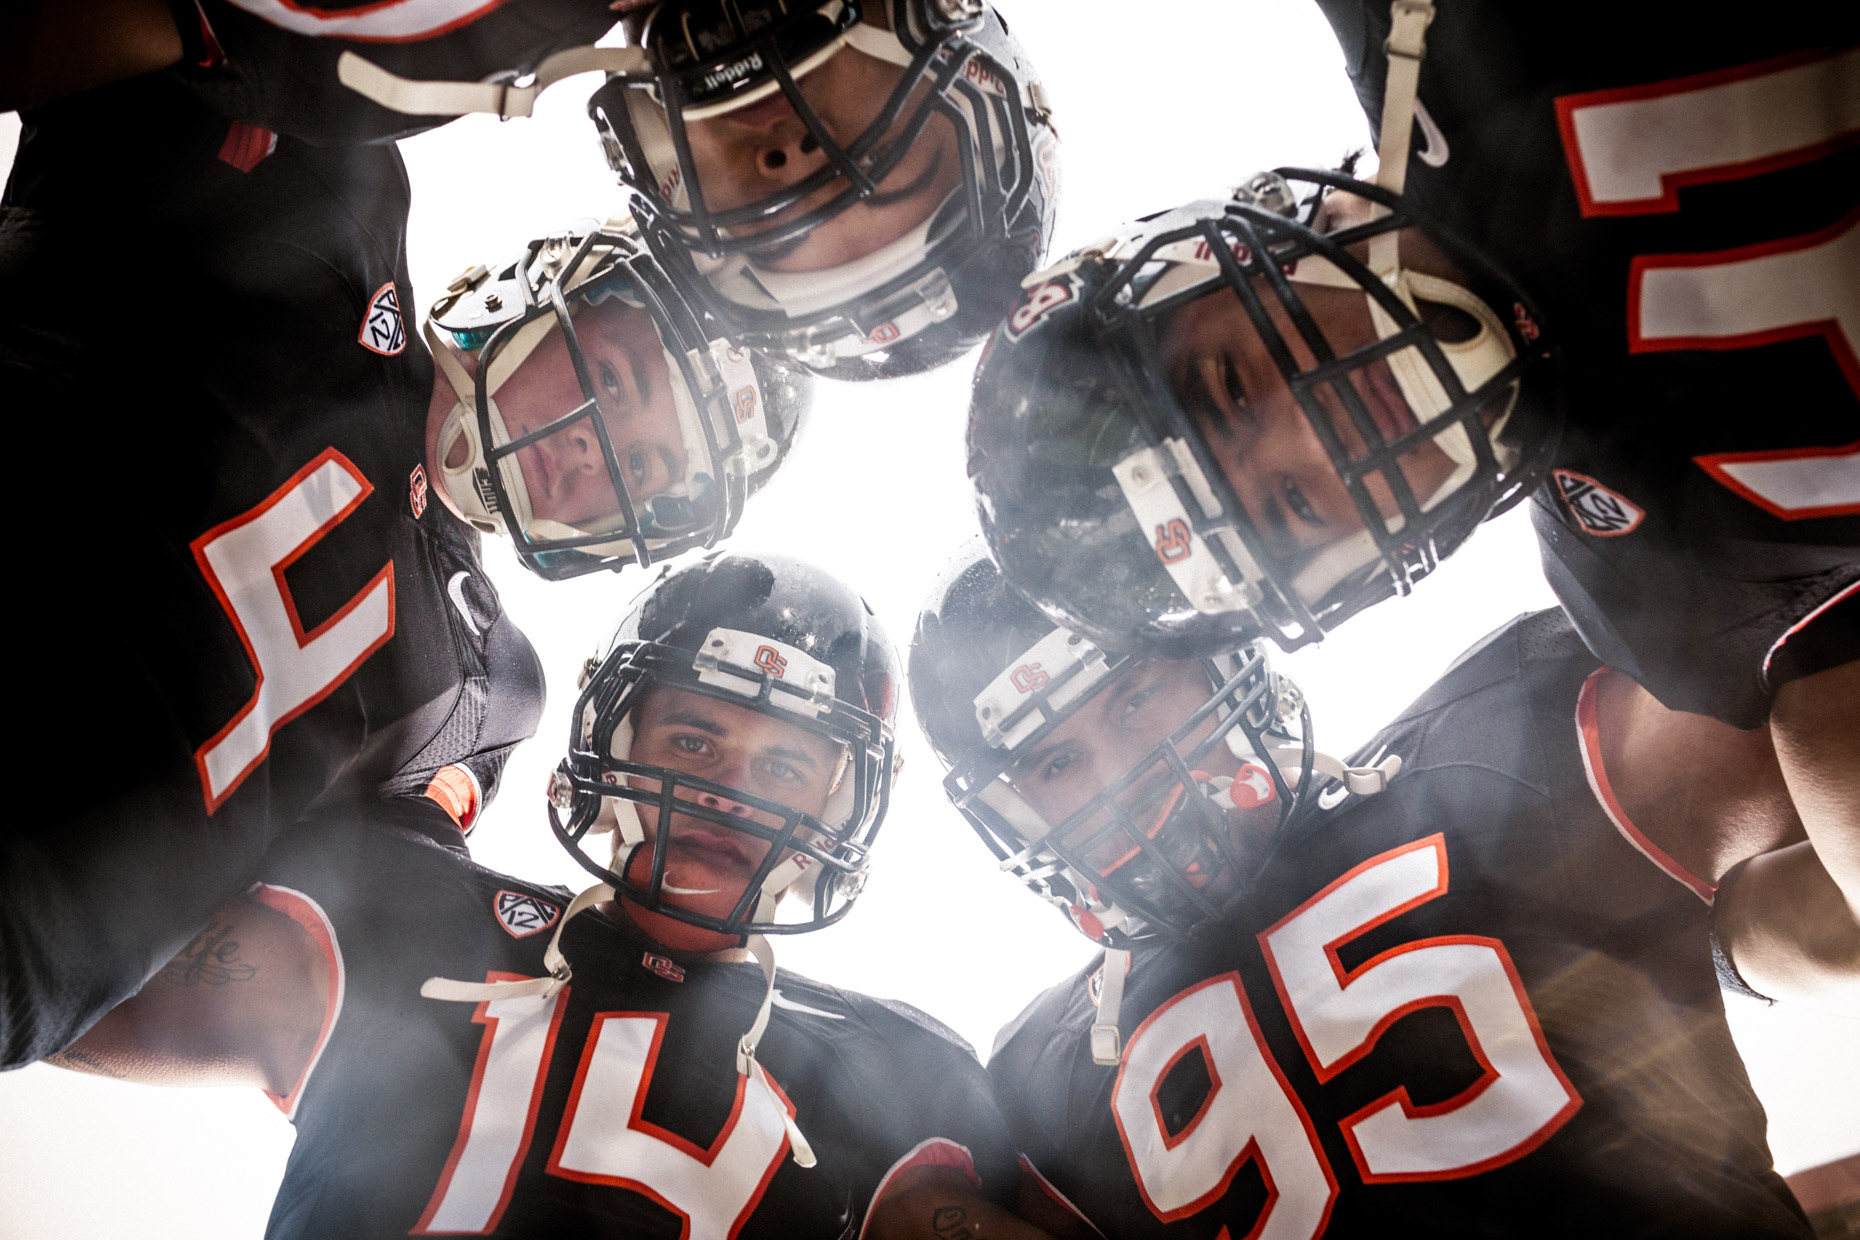 OSU Beavers football team by sport photographer Andy Batt